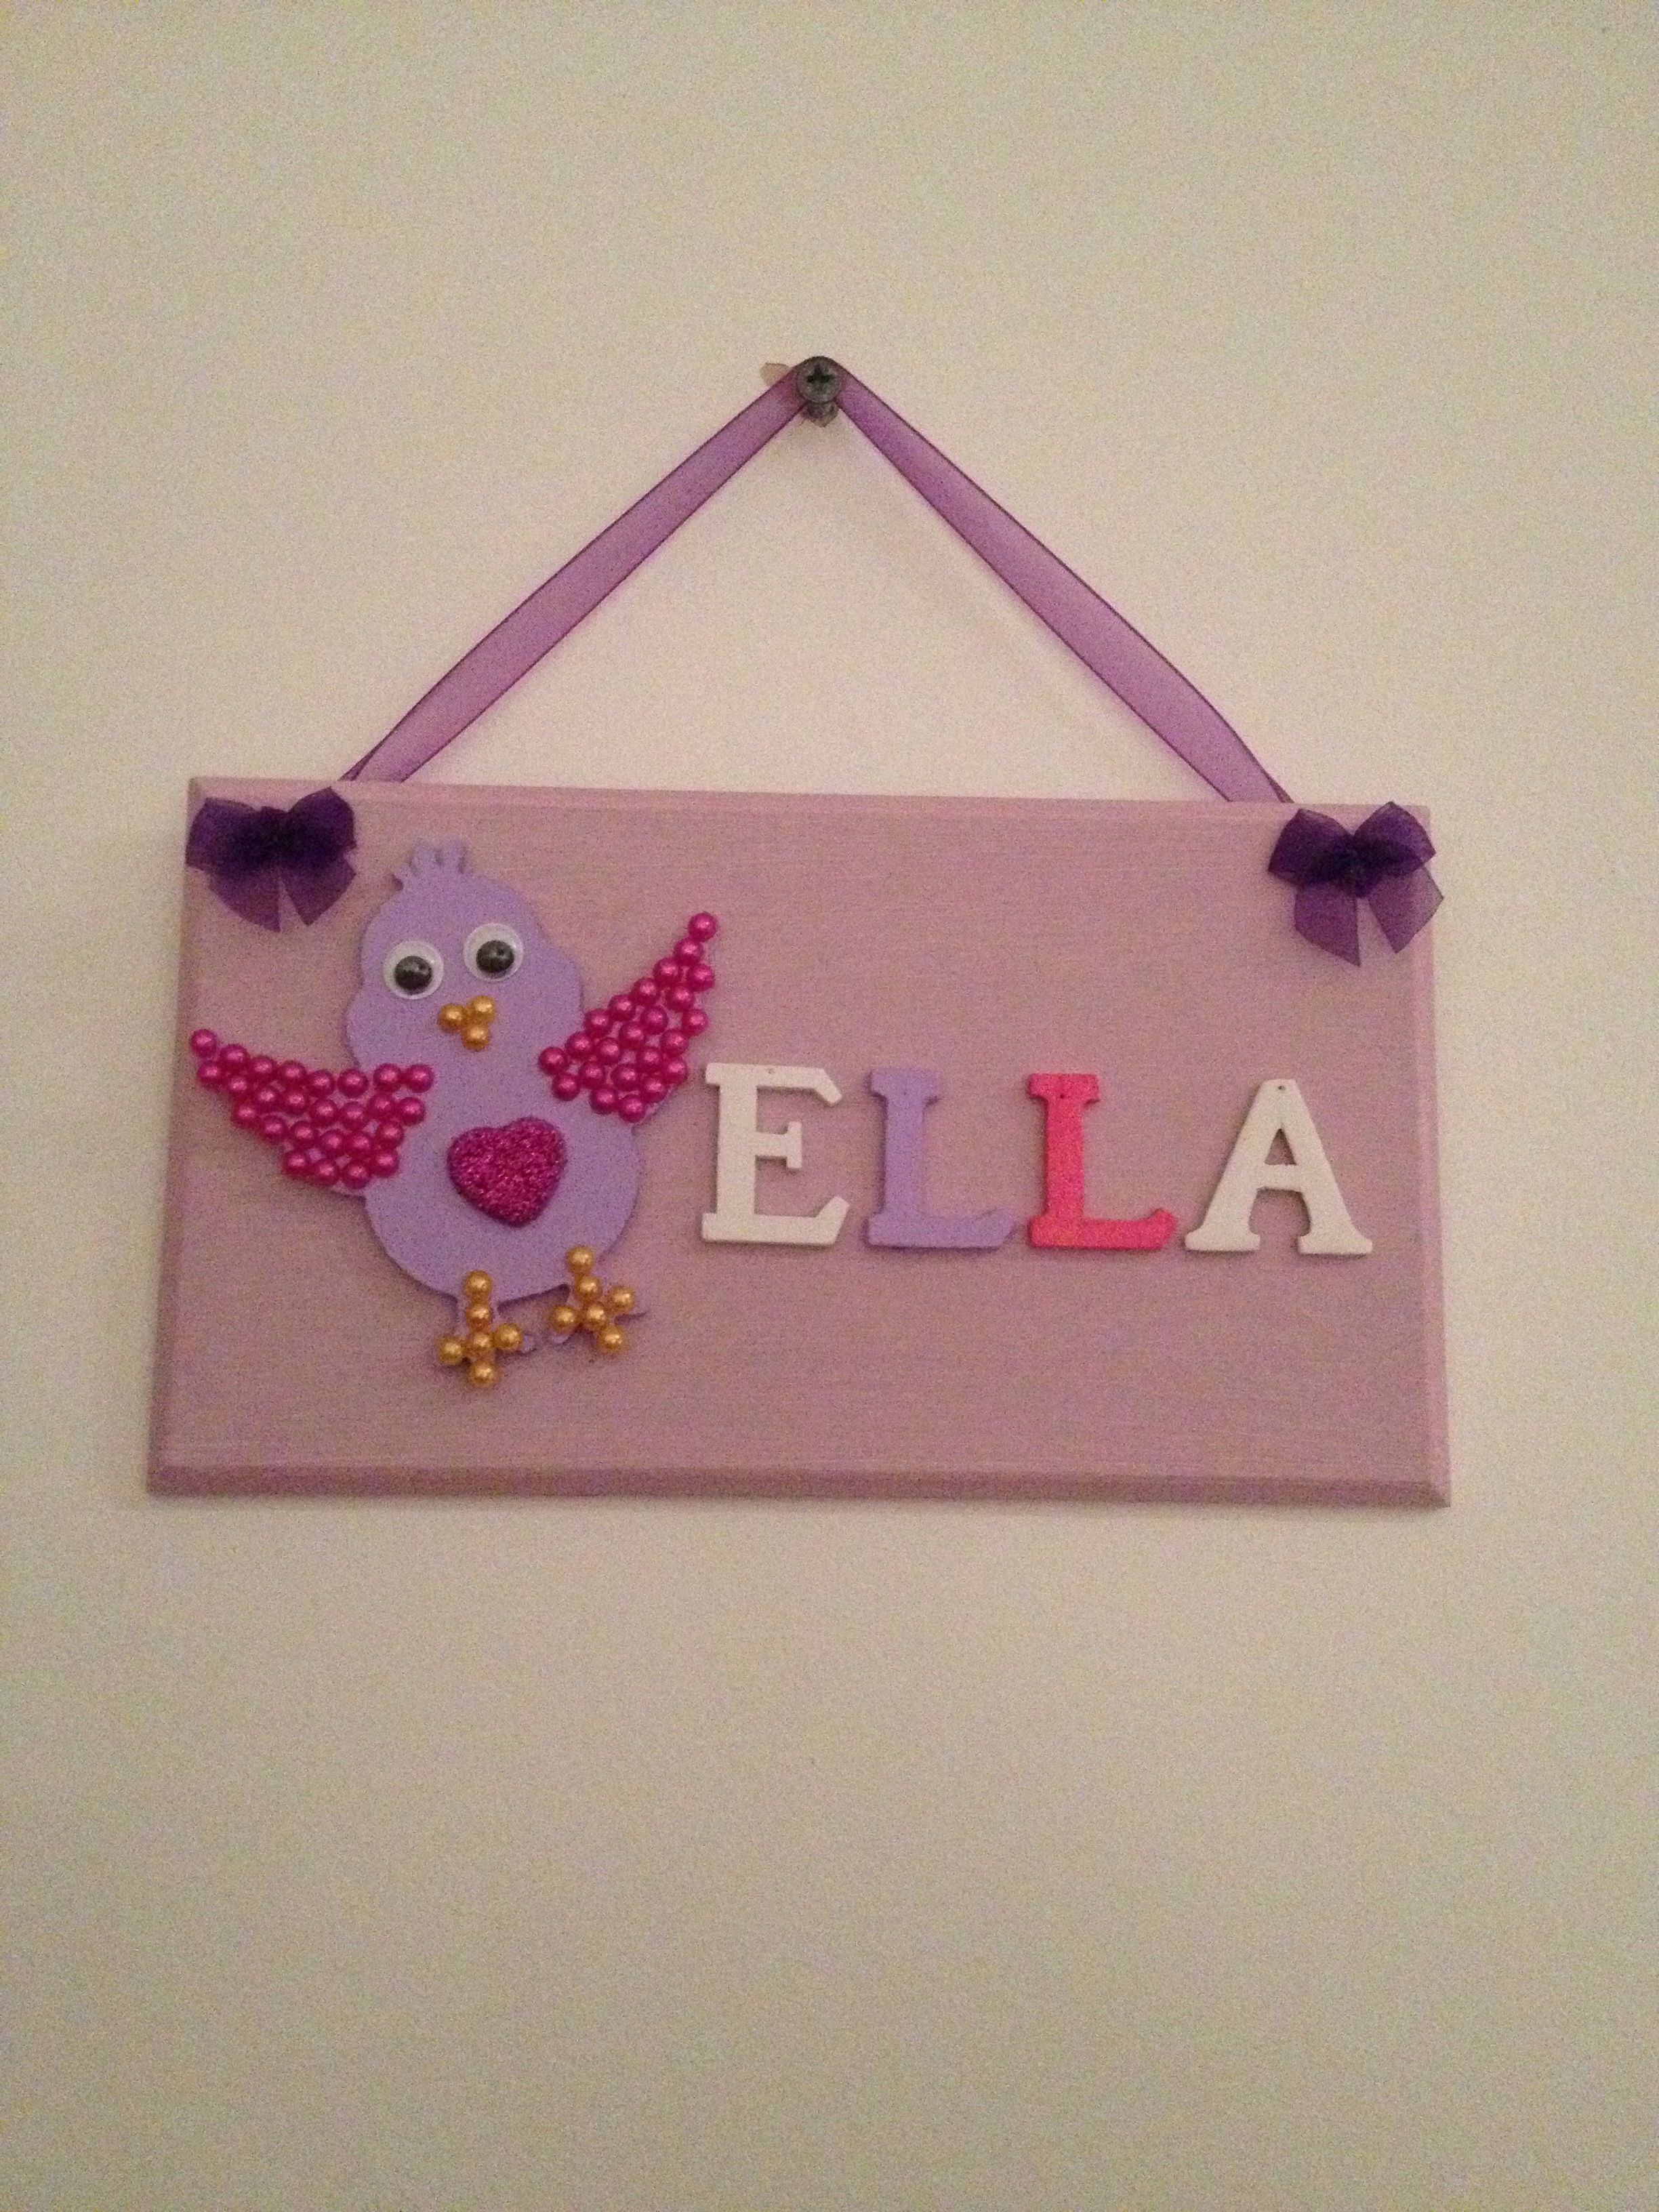 Ella Bedroom Wall Hanger/ Plaque